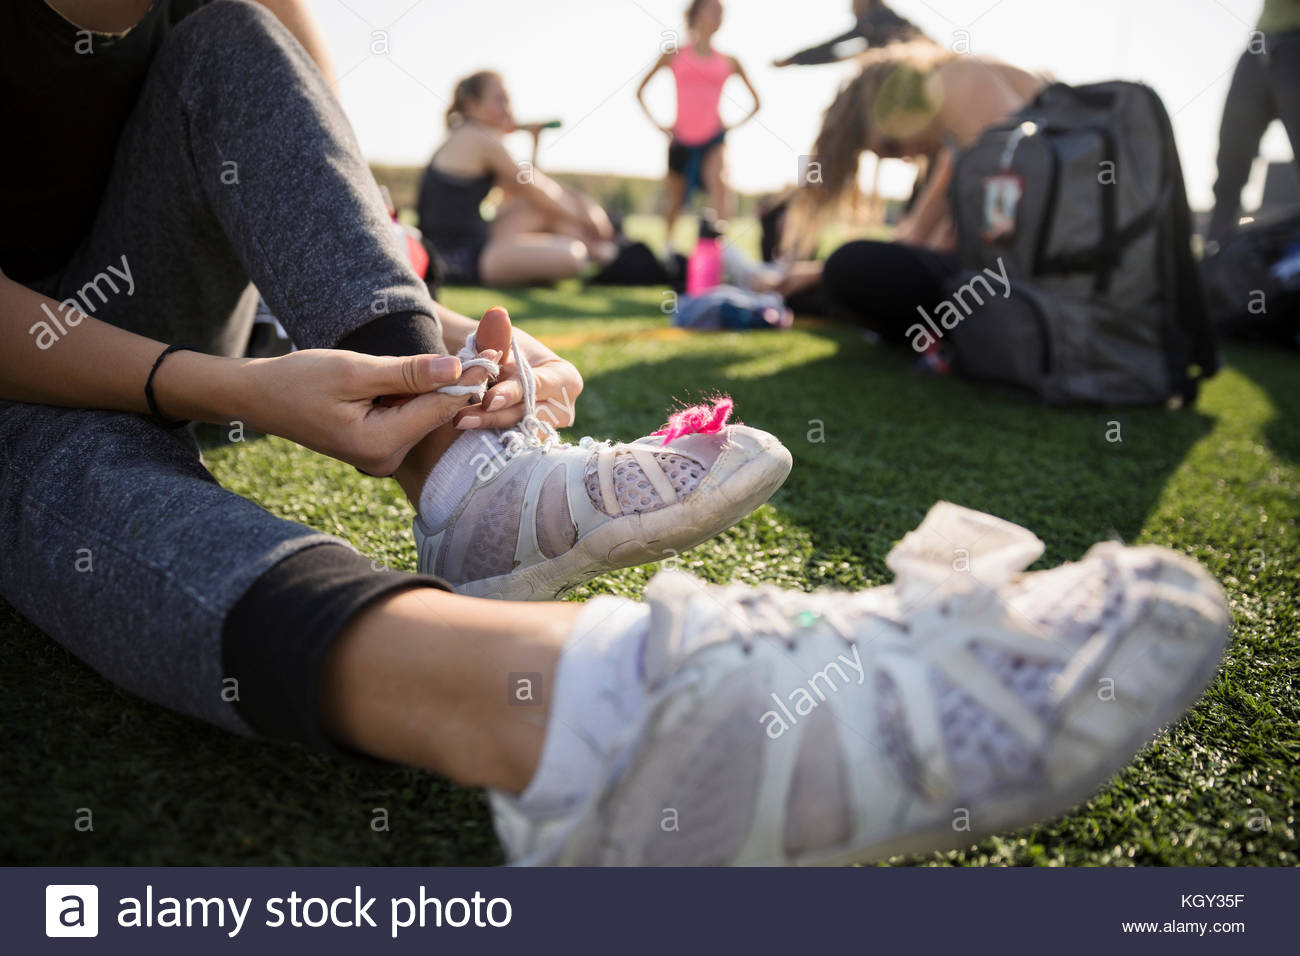 Teenage girl high school cheerleader tying shoes on football field - Stock Image